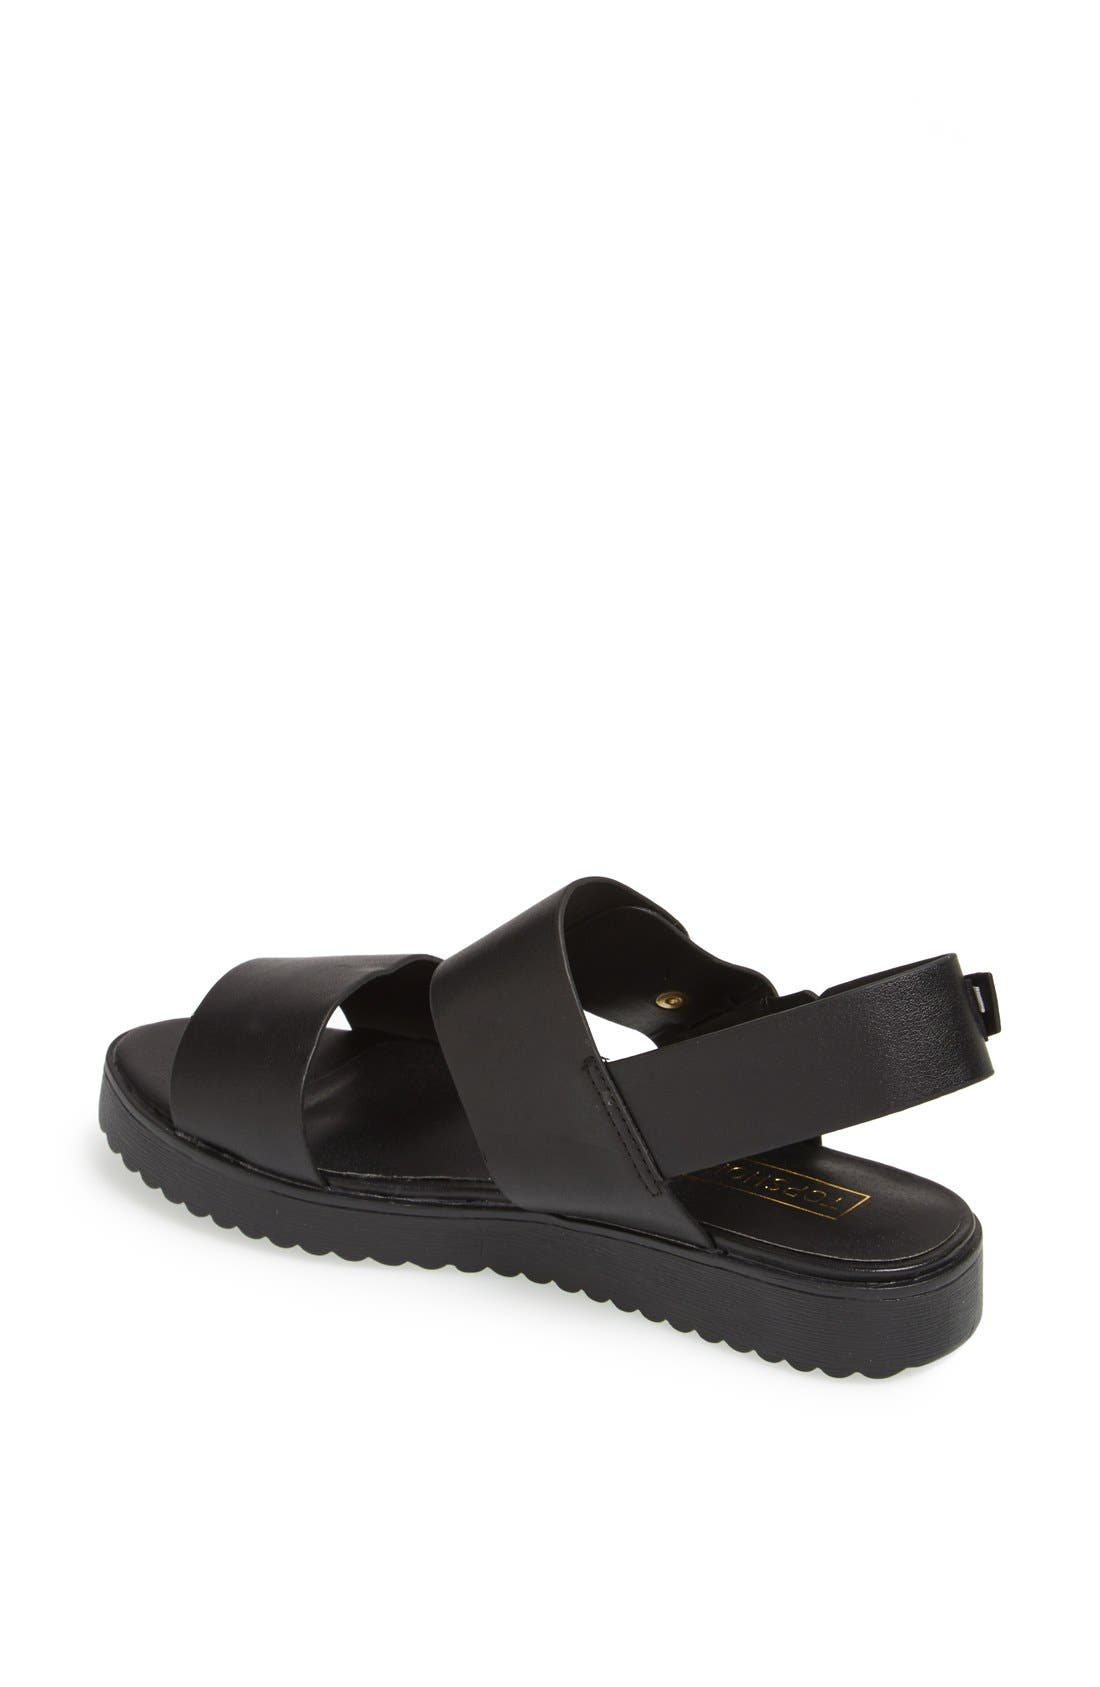 'Hydrate' Faux Leather Sandals,                             Alternate thumbnail 2, color,                             Black